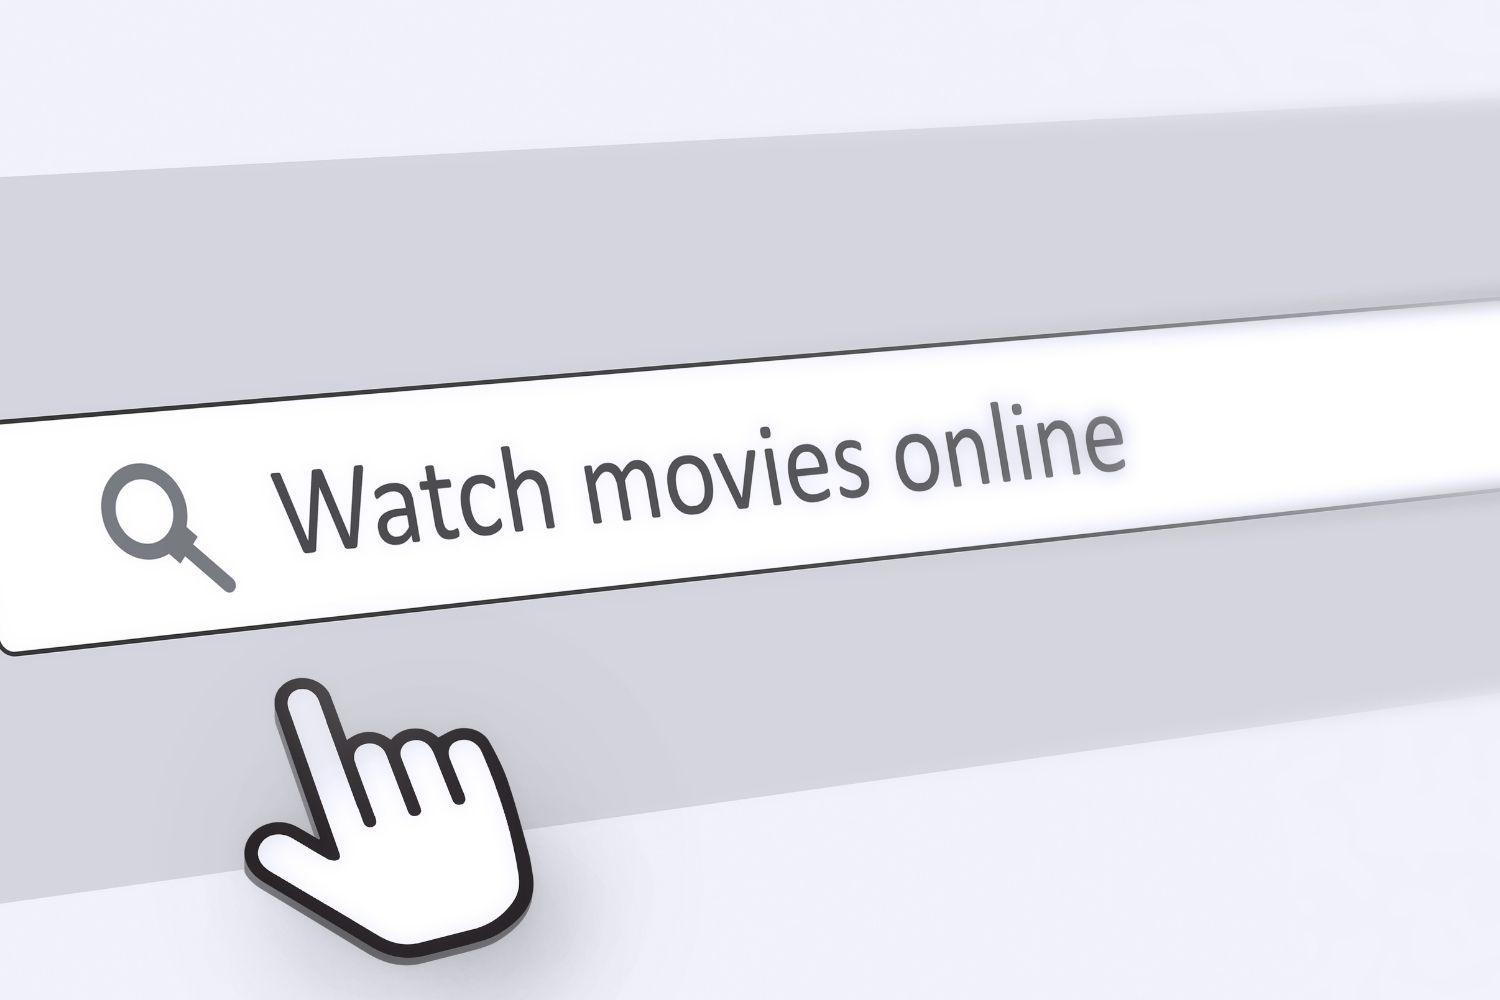 Learn ReactJS the easy way by building a movie search engine